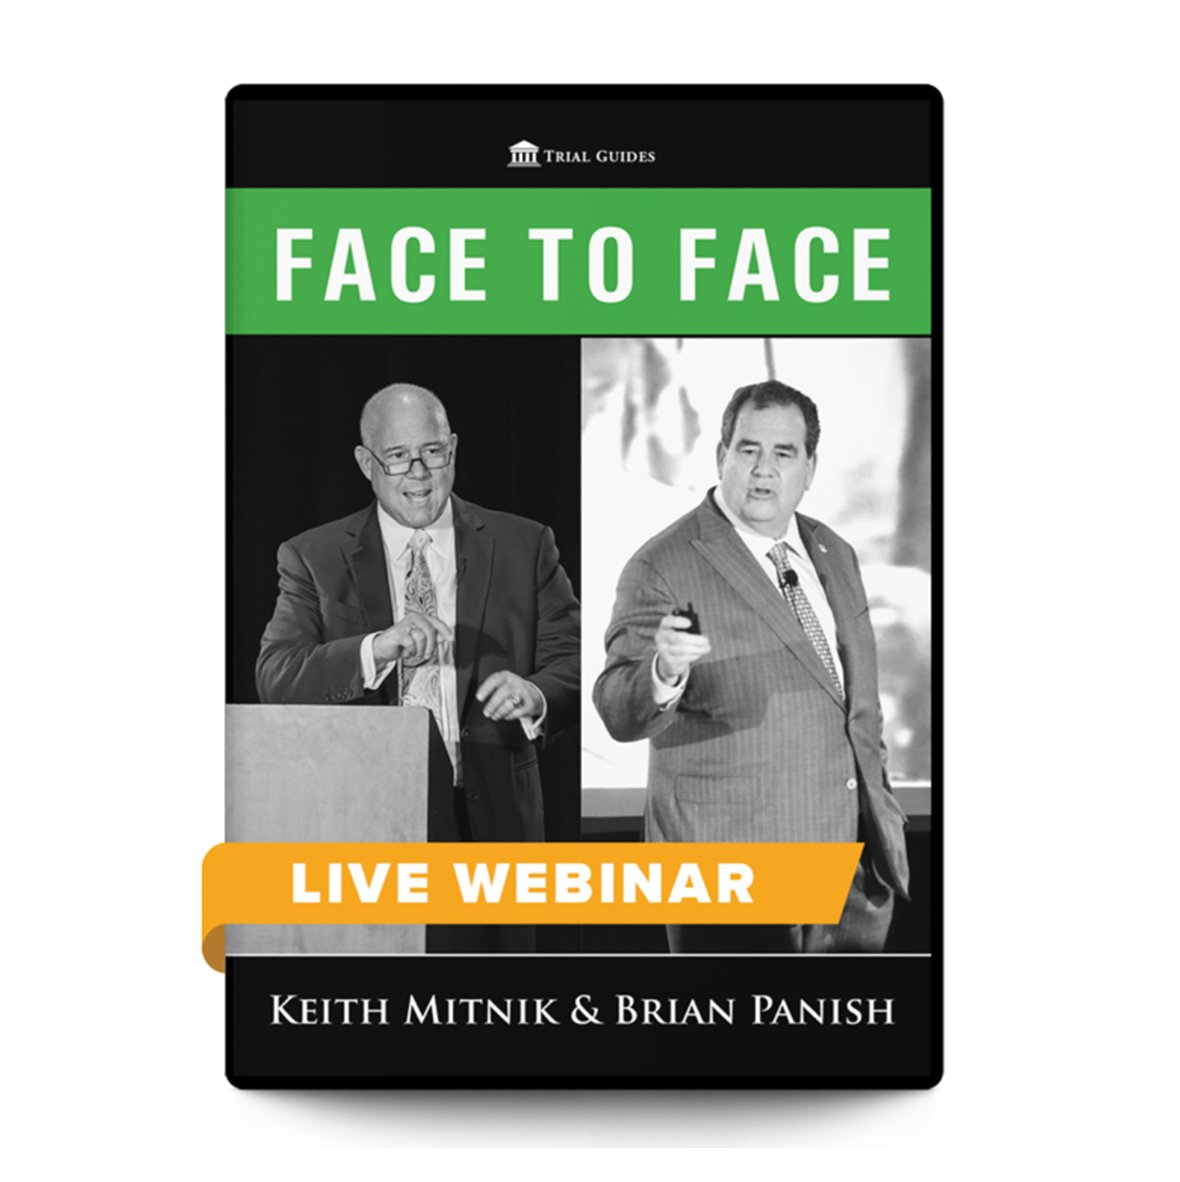 FREE Webinar!⠀ ⠀ FACE to FACE: Keith Mitnik & Brian Panish ⠀  July 10, 2020 ♦ 12:30 PM ET  9:30 AM PT⠀ ⠀ Register and learn more here: https://t.co/vK1Qtu5fYu https://t.co/Qd4VULmjDs